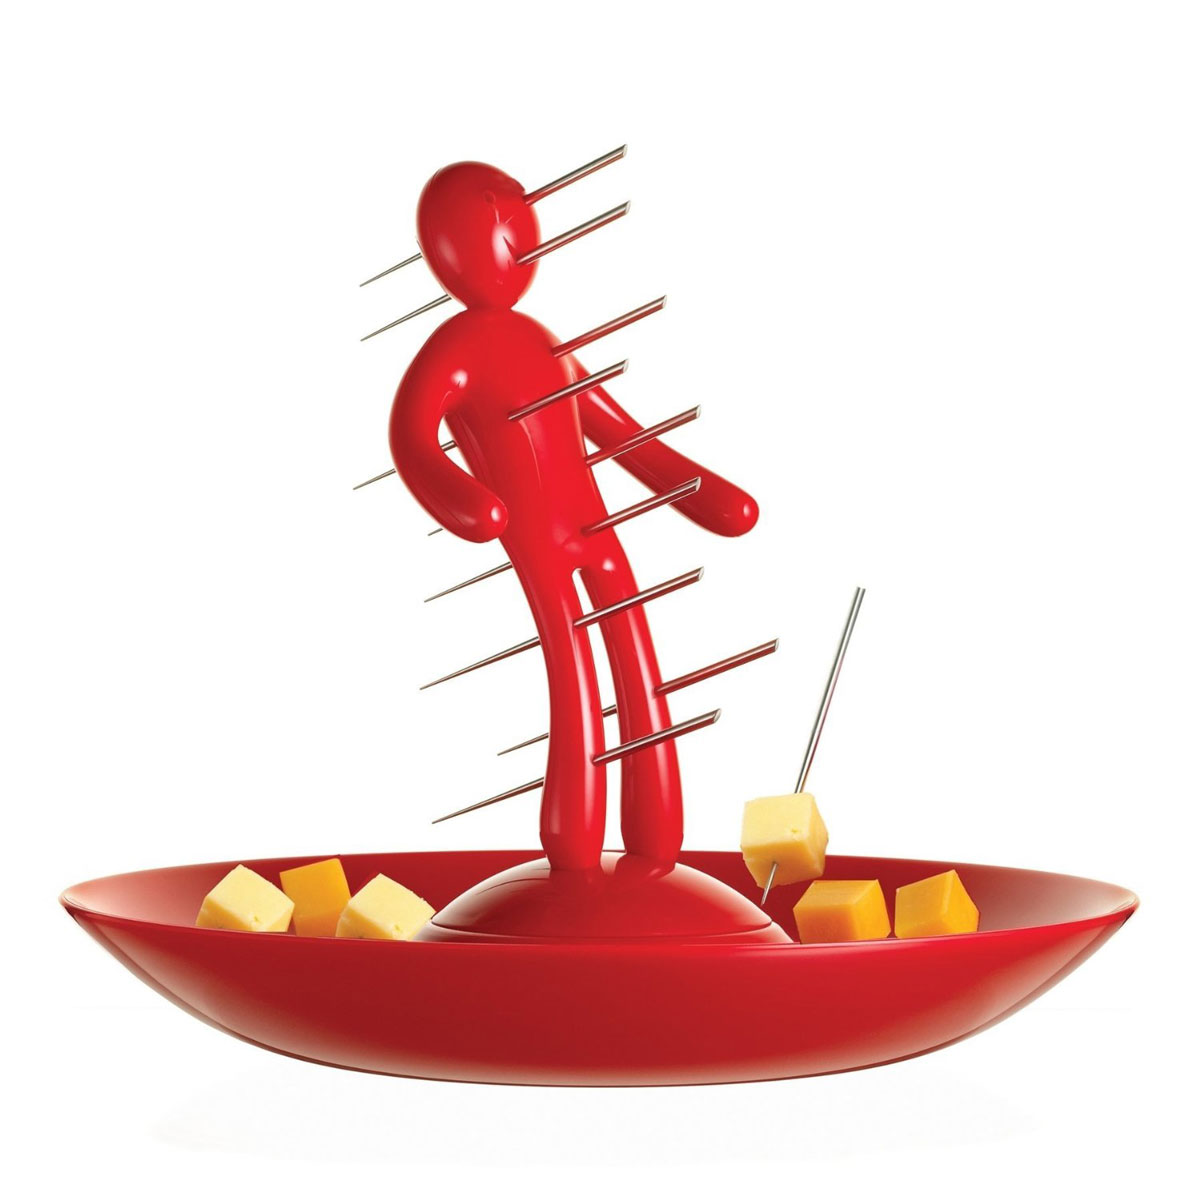 Ex-skewer-set-voodoo-appetizer-serving-tray-3